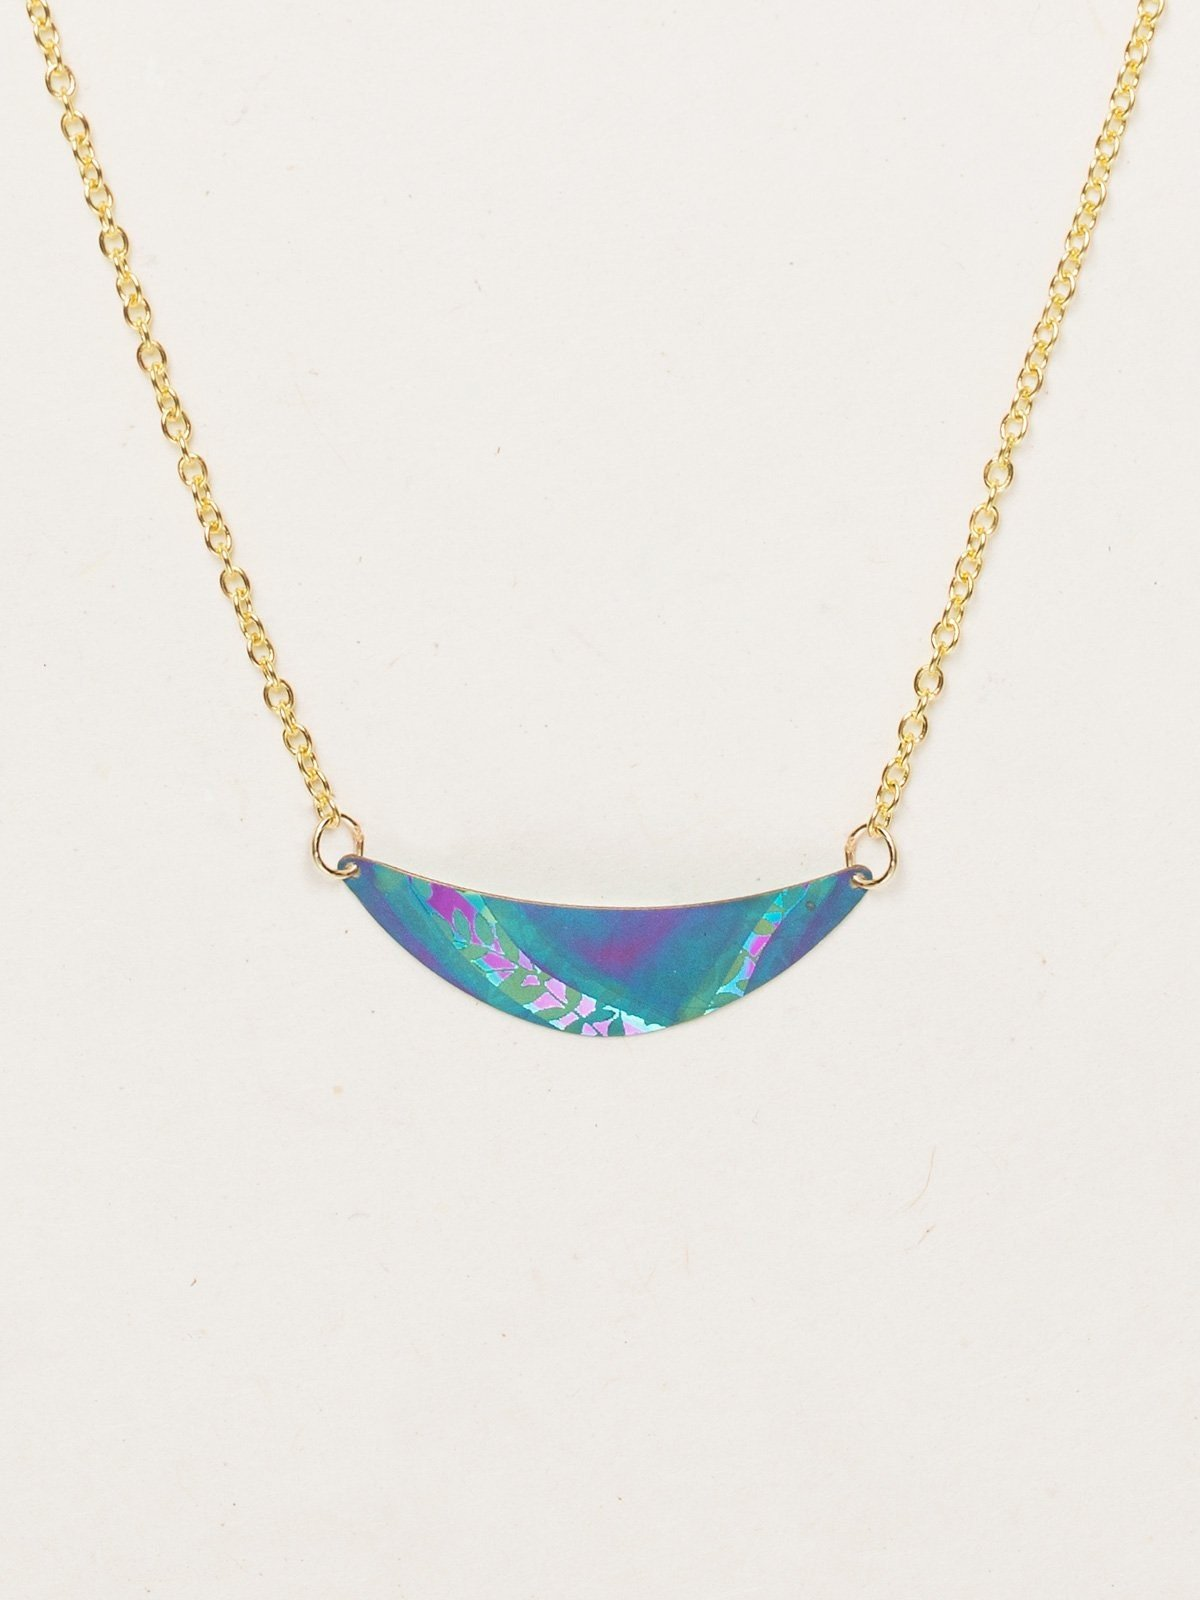 Selena necklace by Holly Yashi Jewelry